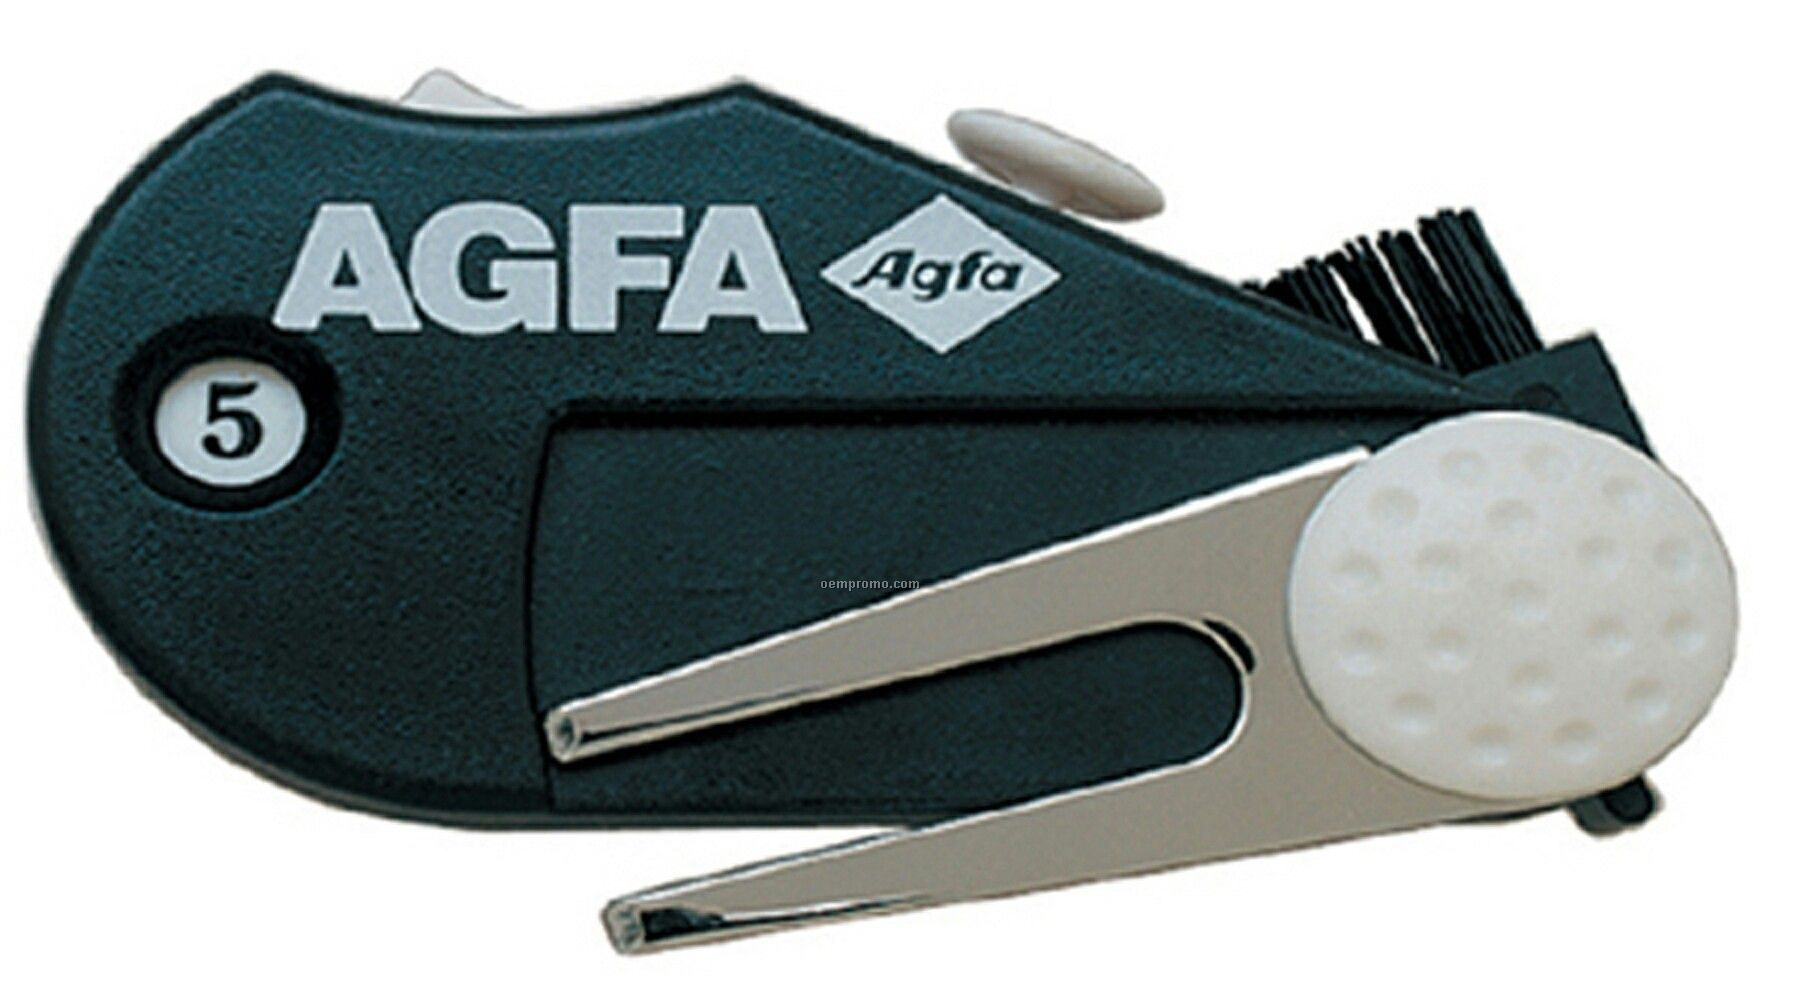 Golf Tool With Score Counter, Divot Tool , Ball Marker--6 Day Production